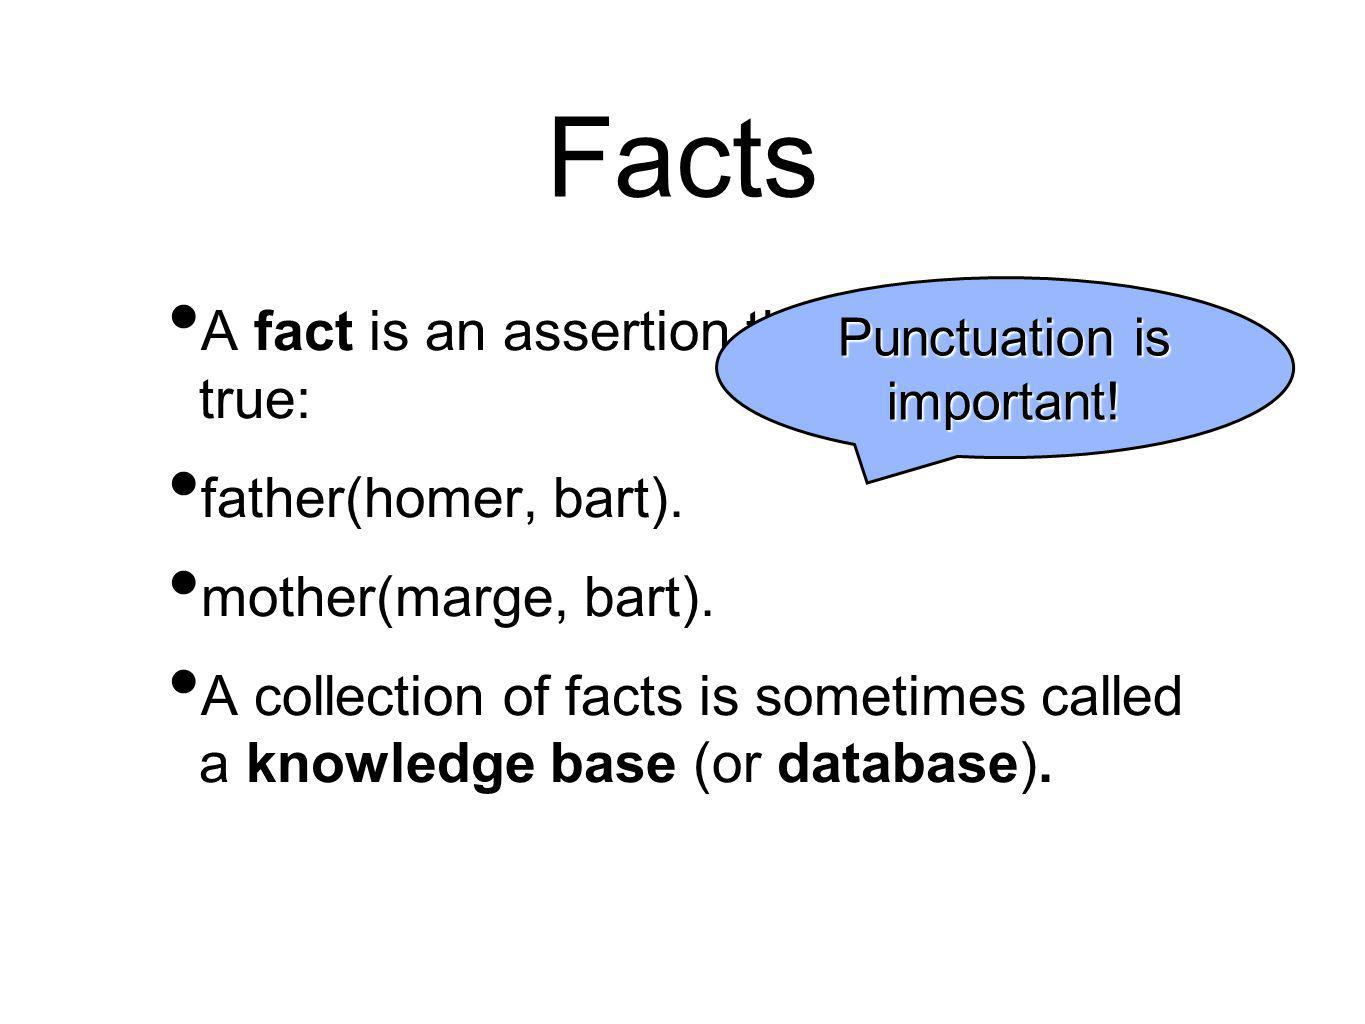 Facts A fact is an assertion that a predicate is true: father(homer, bart). mother(marge, bart). A collection of facts is sometimes called a knowledge